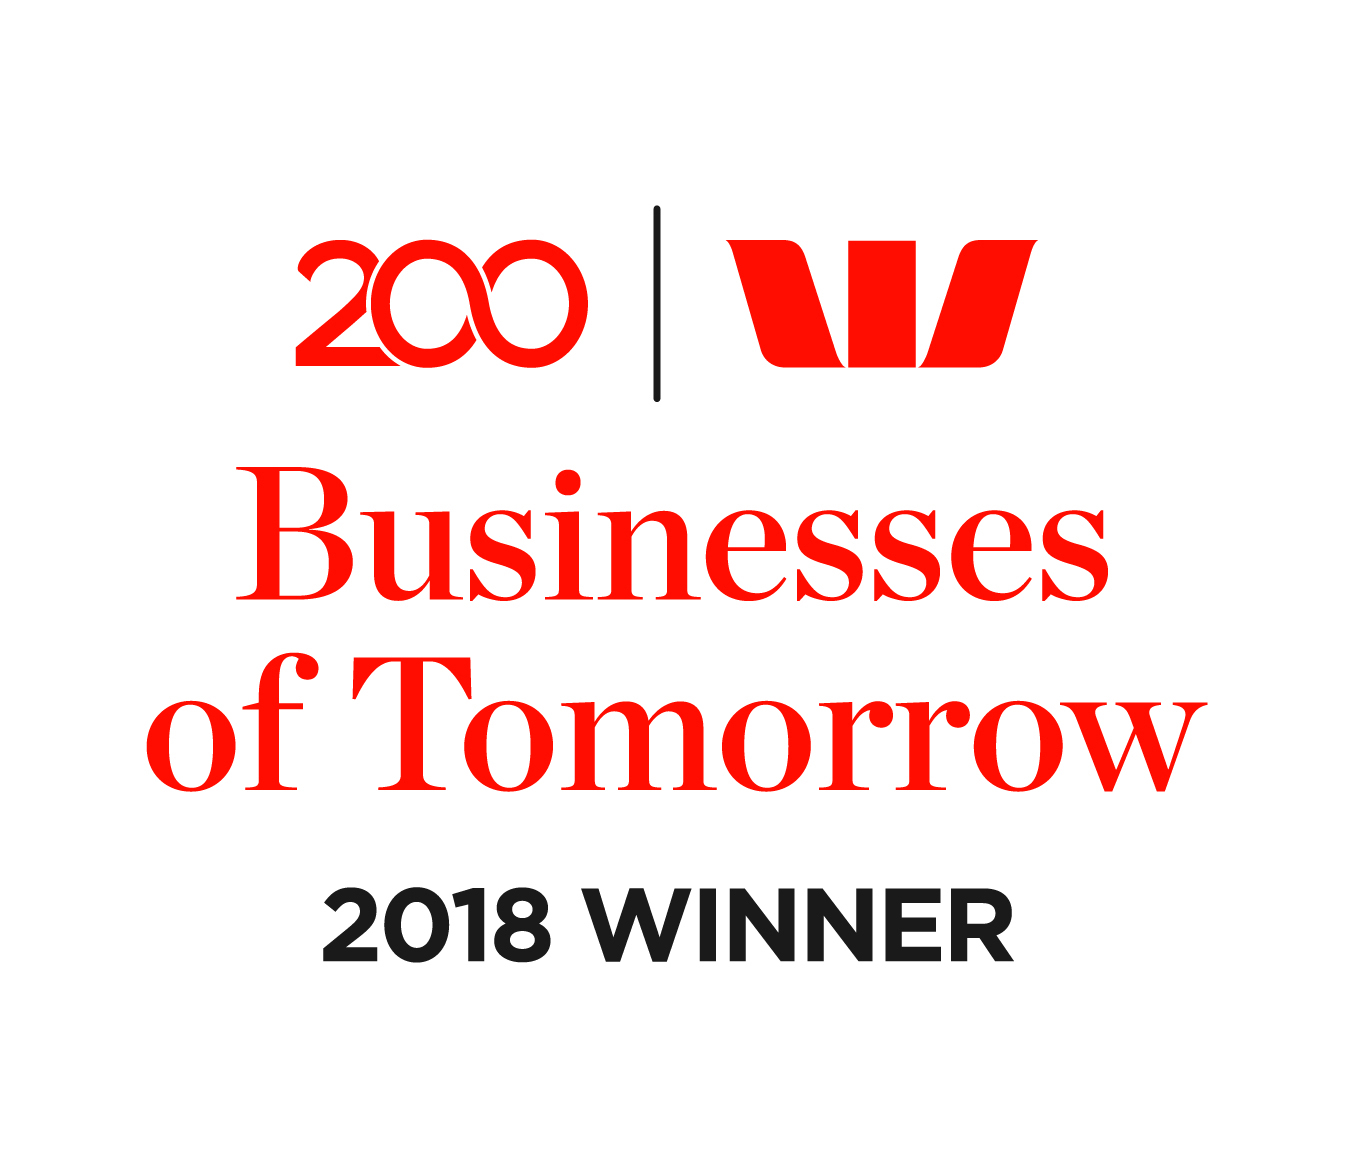 Businesses of Tomorrow 2018 Winner Colour 1